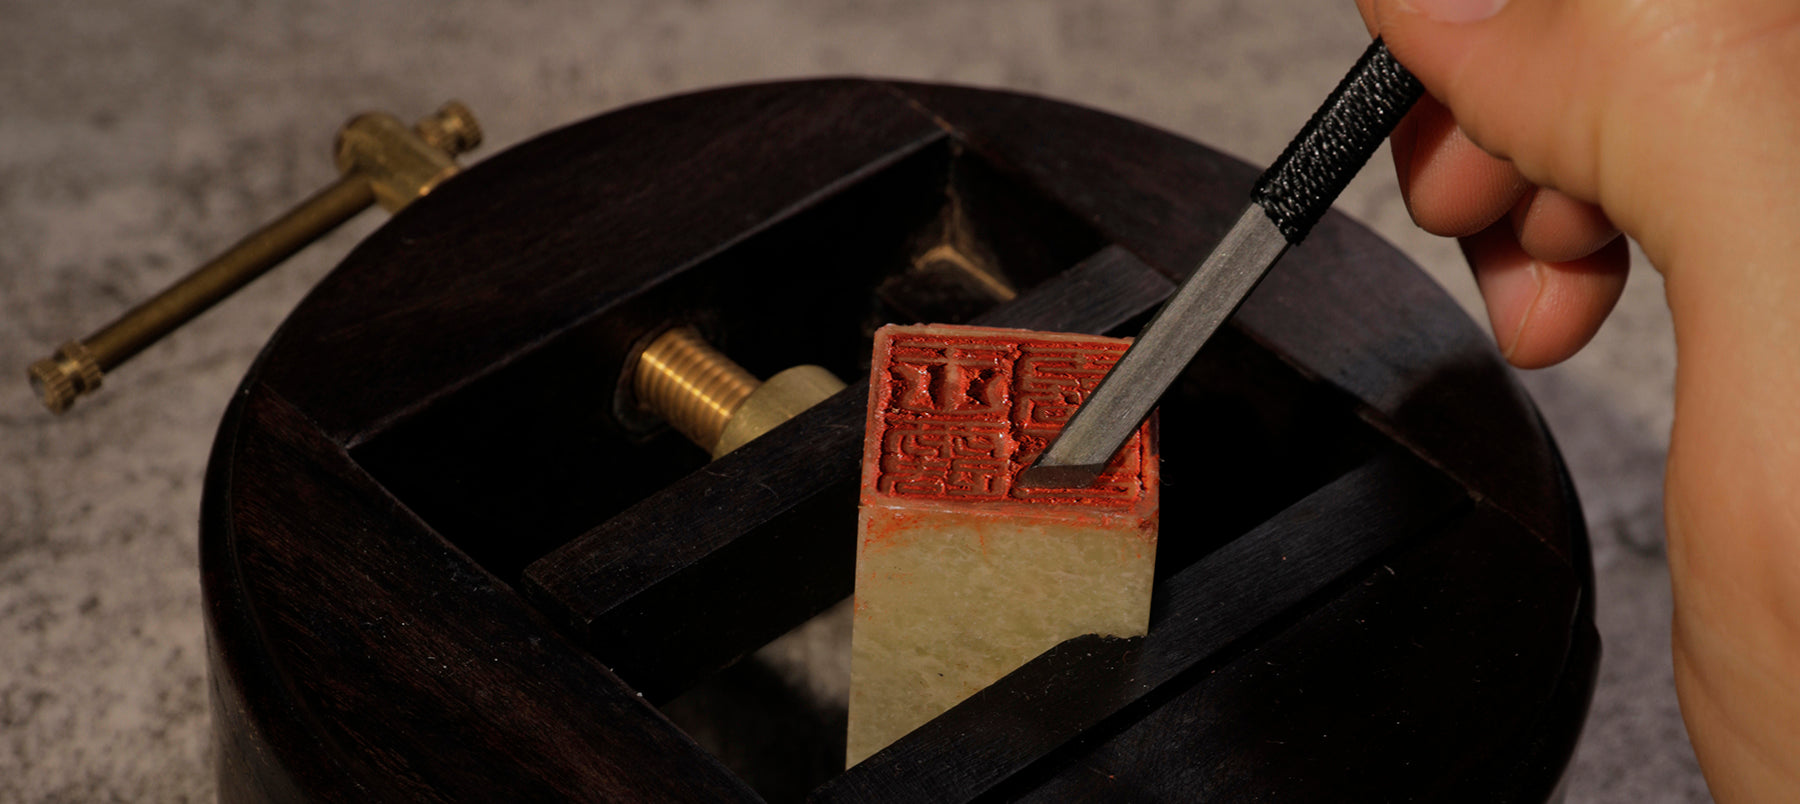 Seal carving Tools and Seal Paste